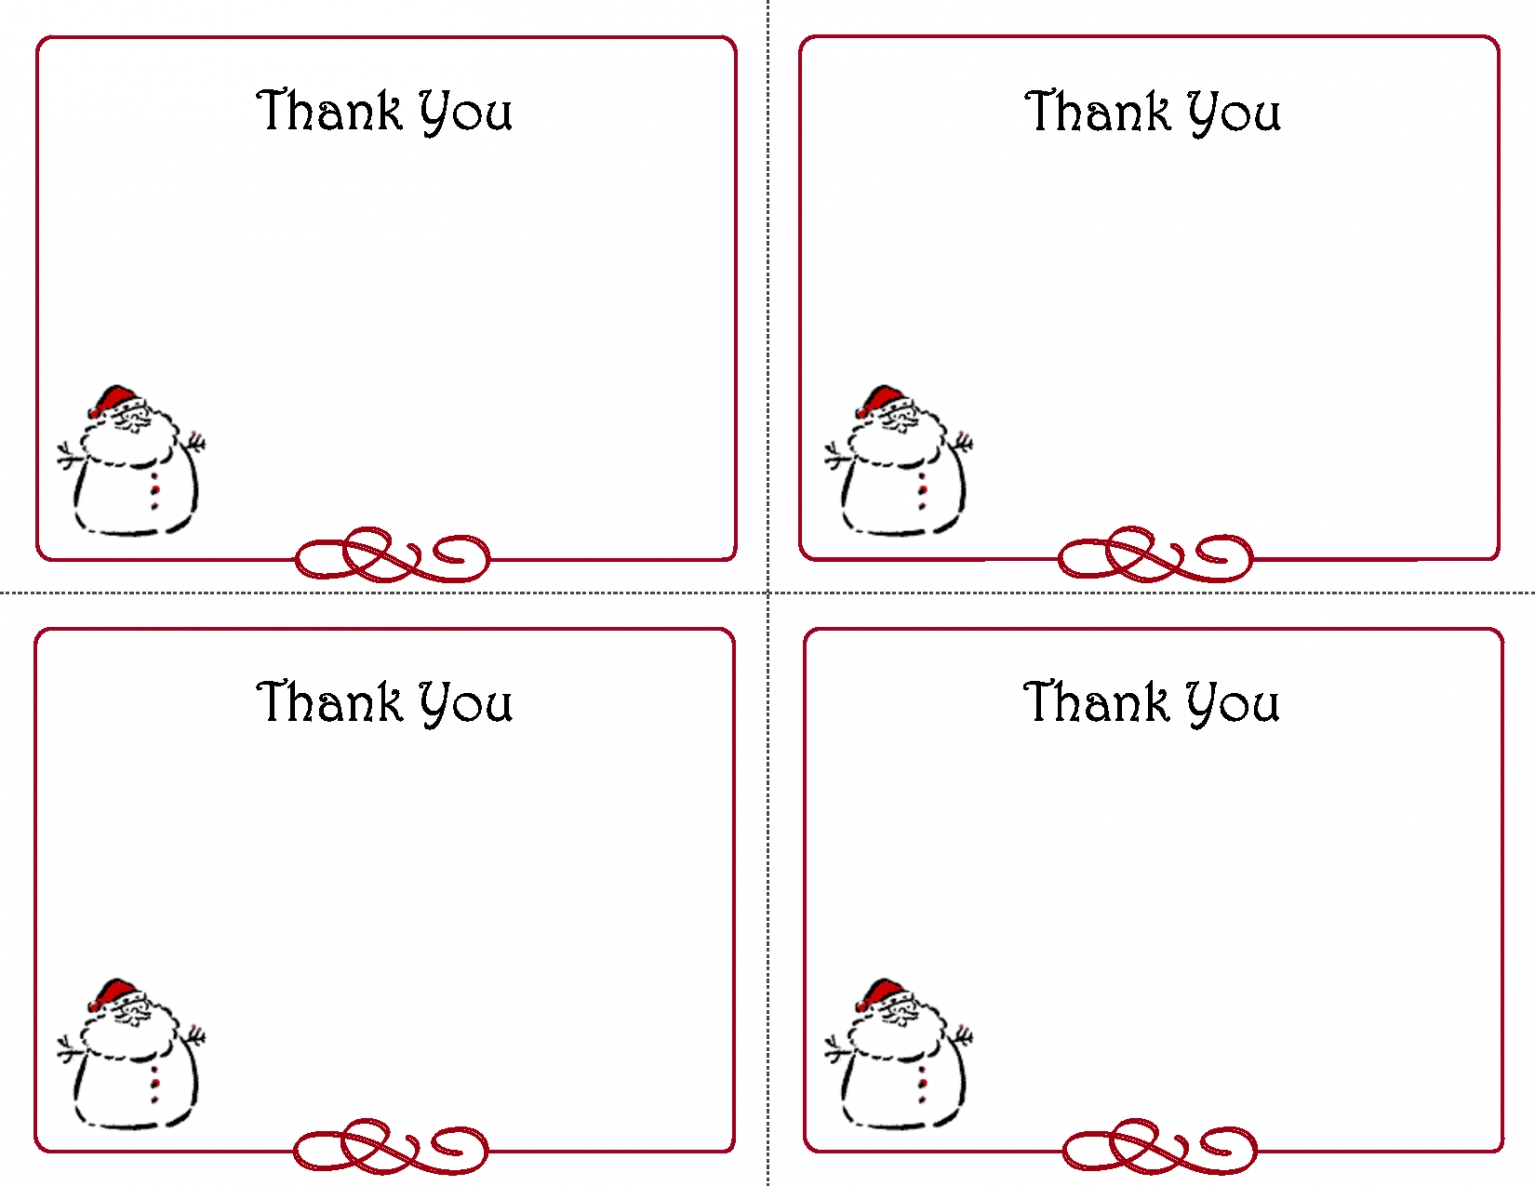 Christmas Thank You Cards Printable Free – Festival Collections - Christmas Thank You Cards Printable Free